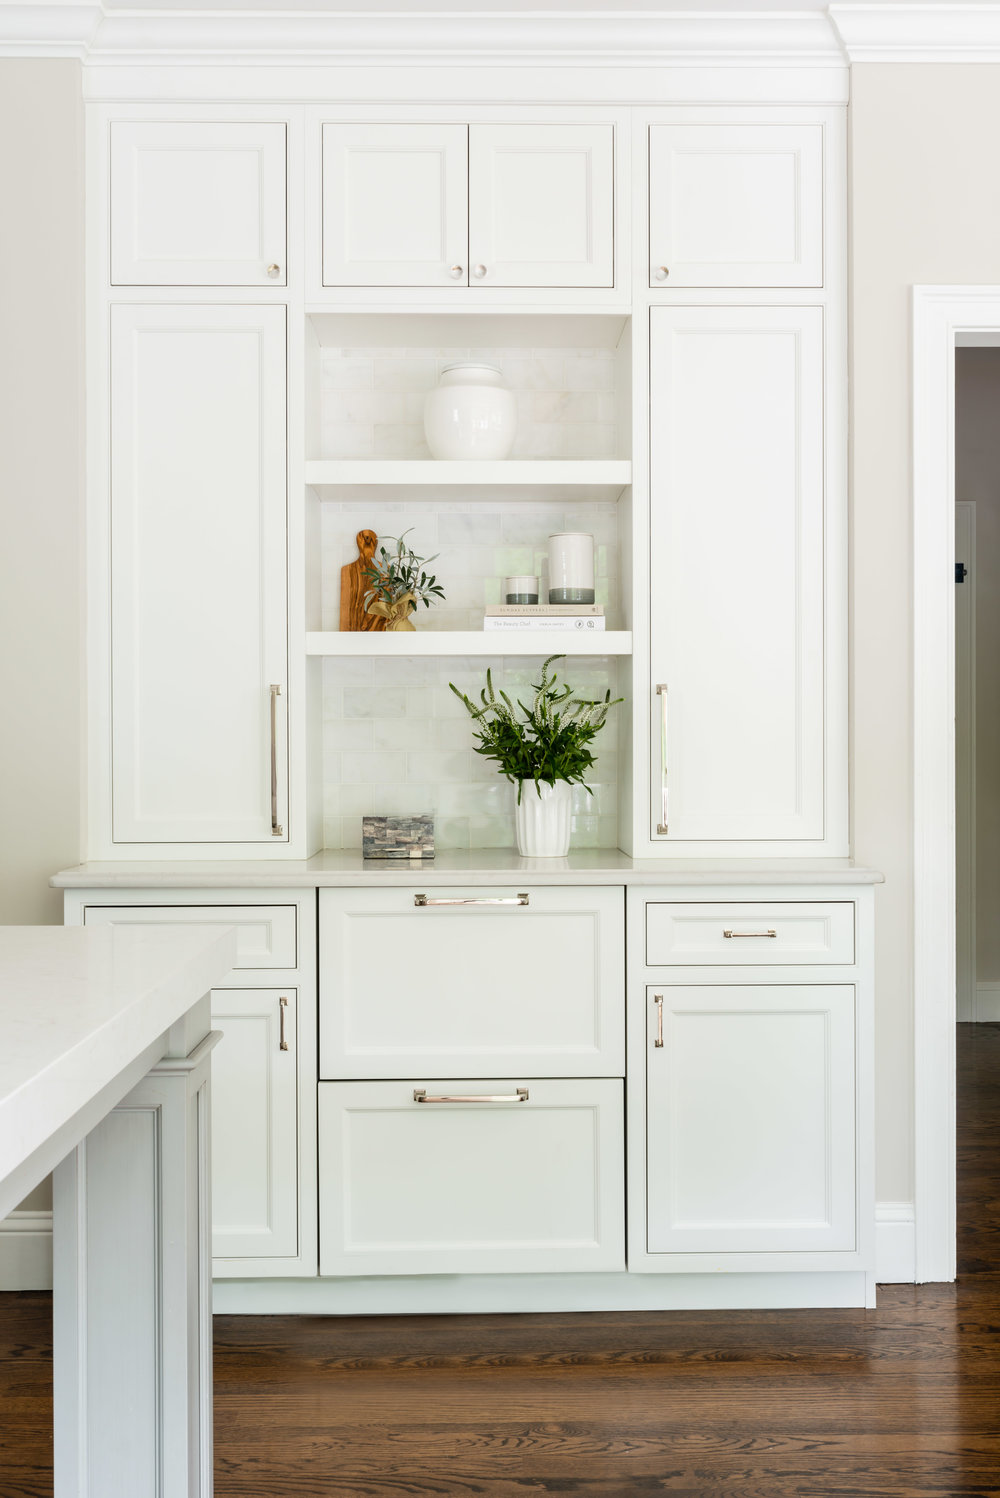 MaggieJerdeDesign Hinghamproject-5098edit.jpg